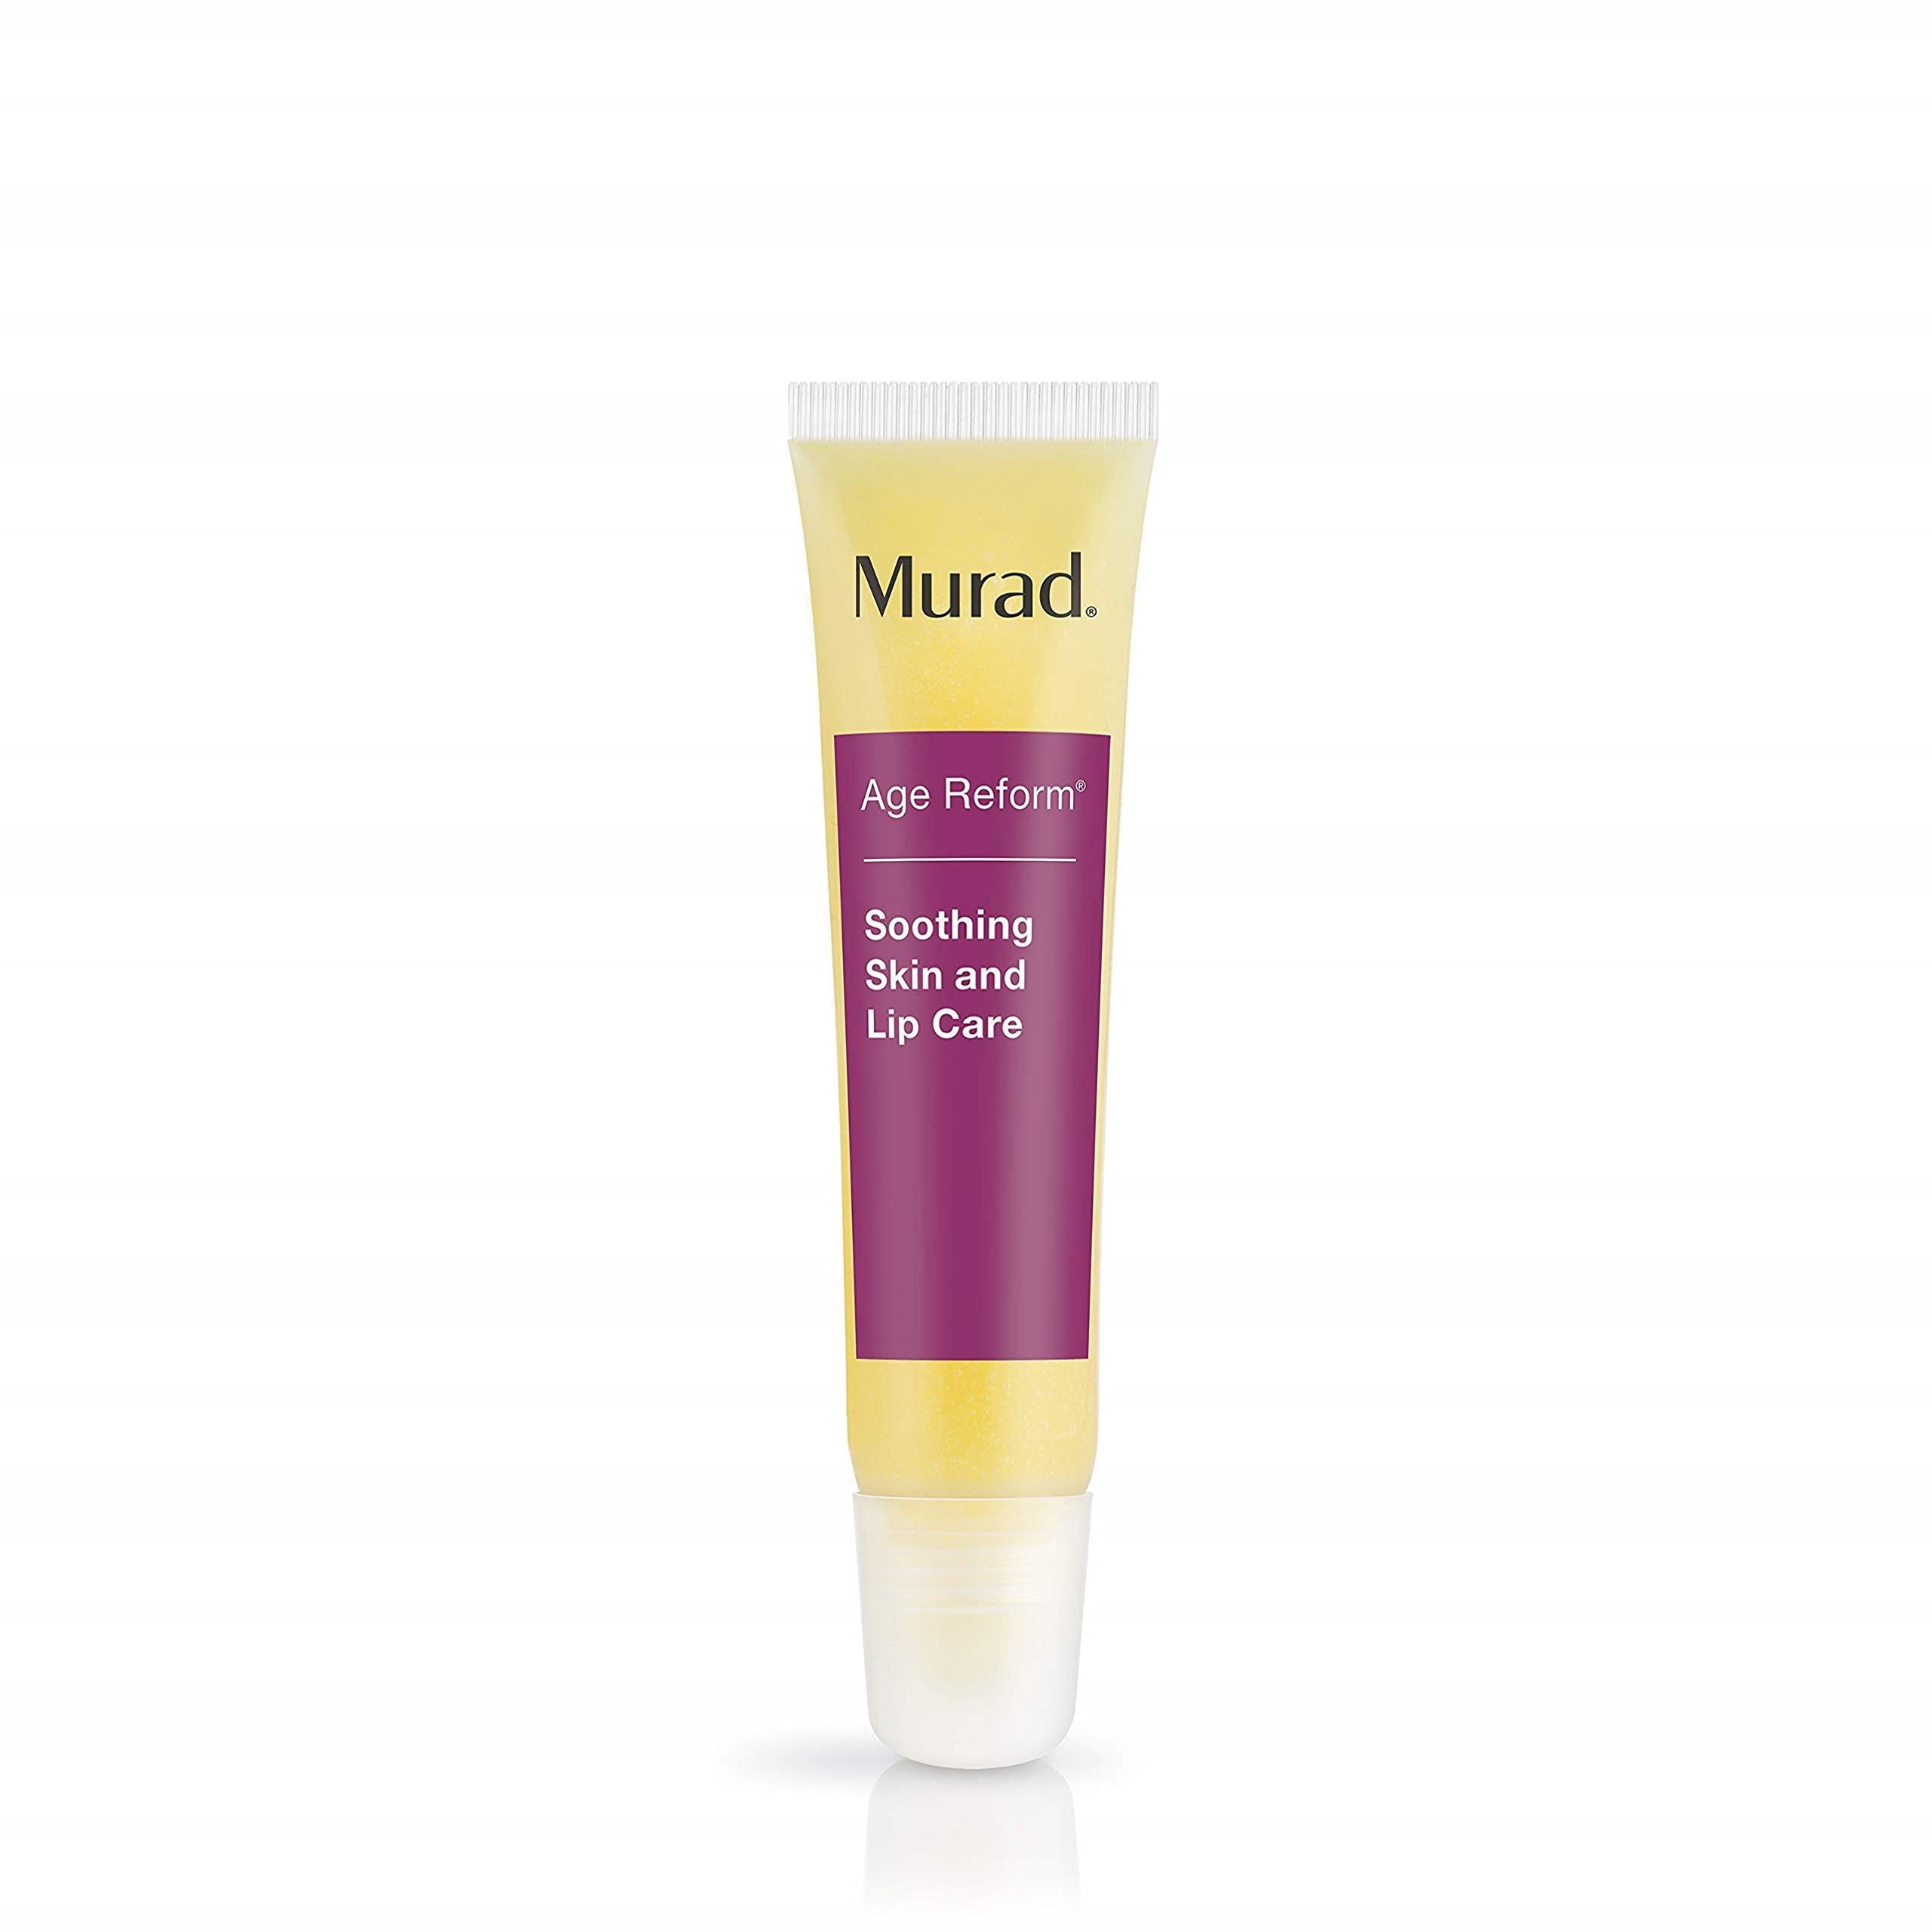 Murad - Murad Age Reform Soothing Skin and Lip Care (0.5 oz)